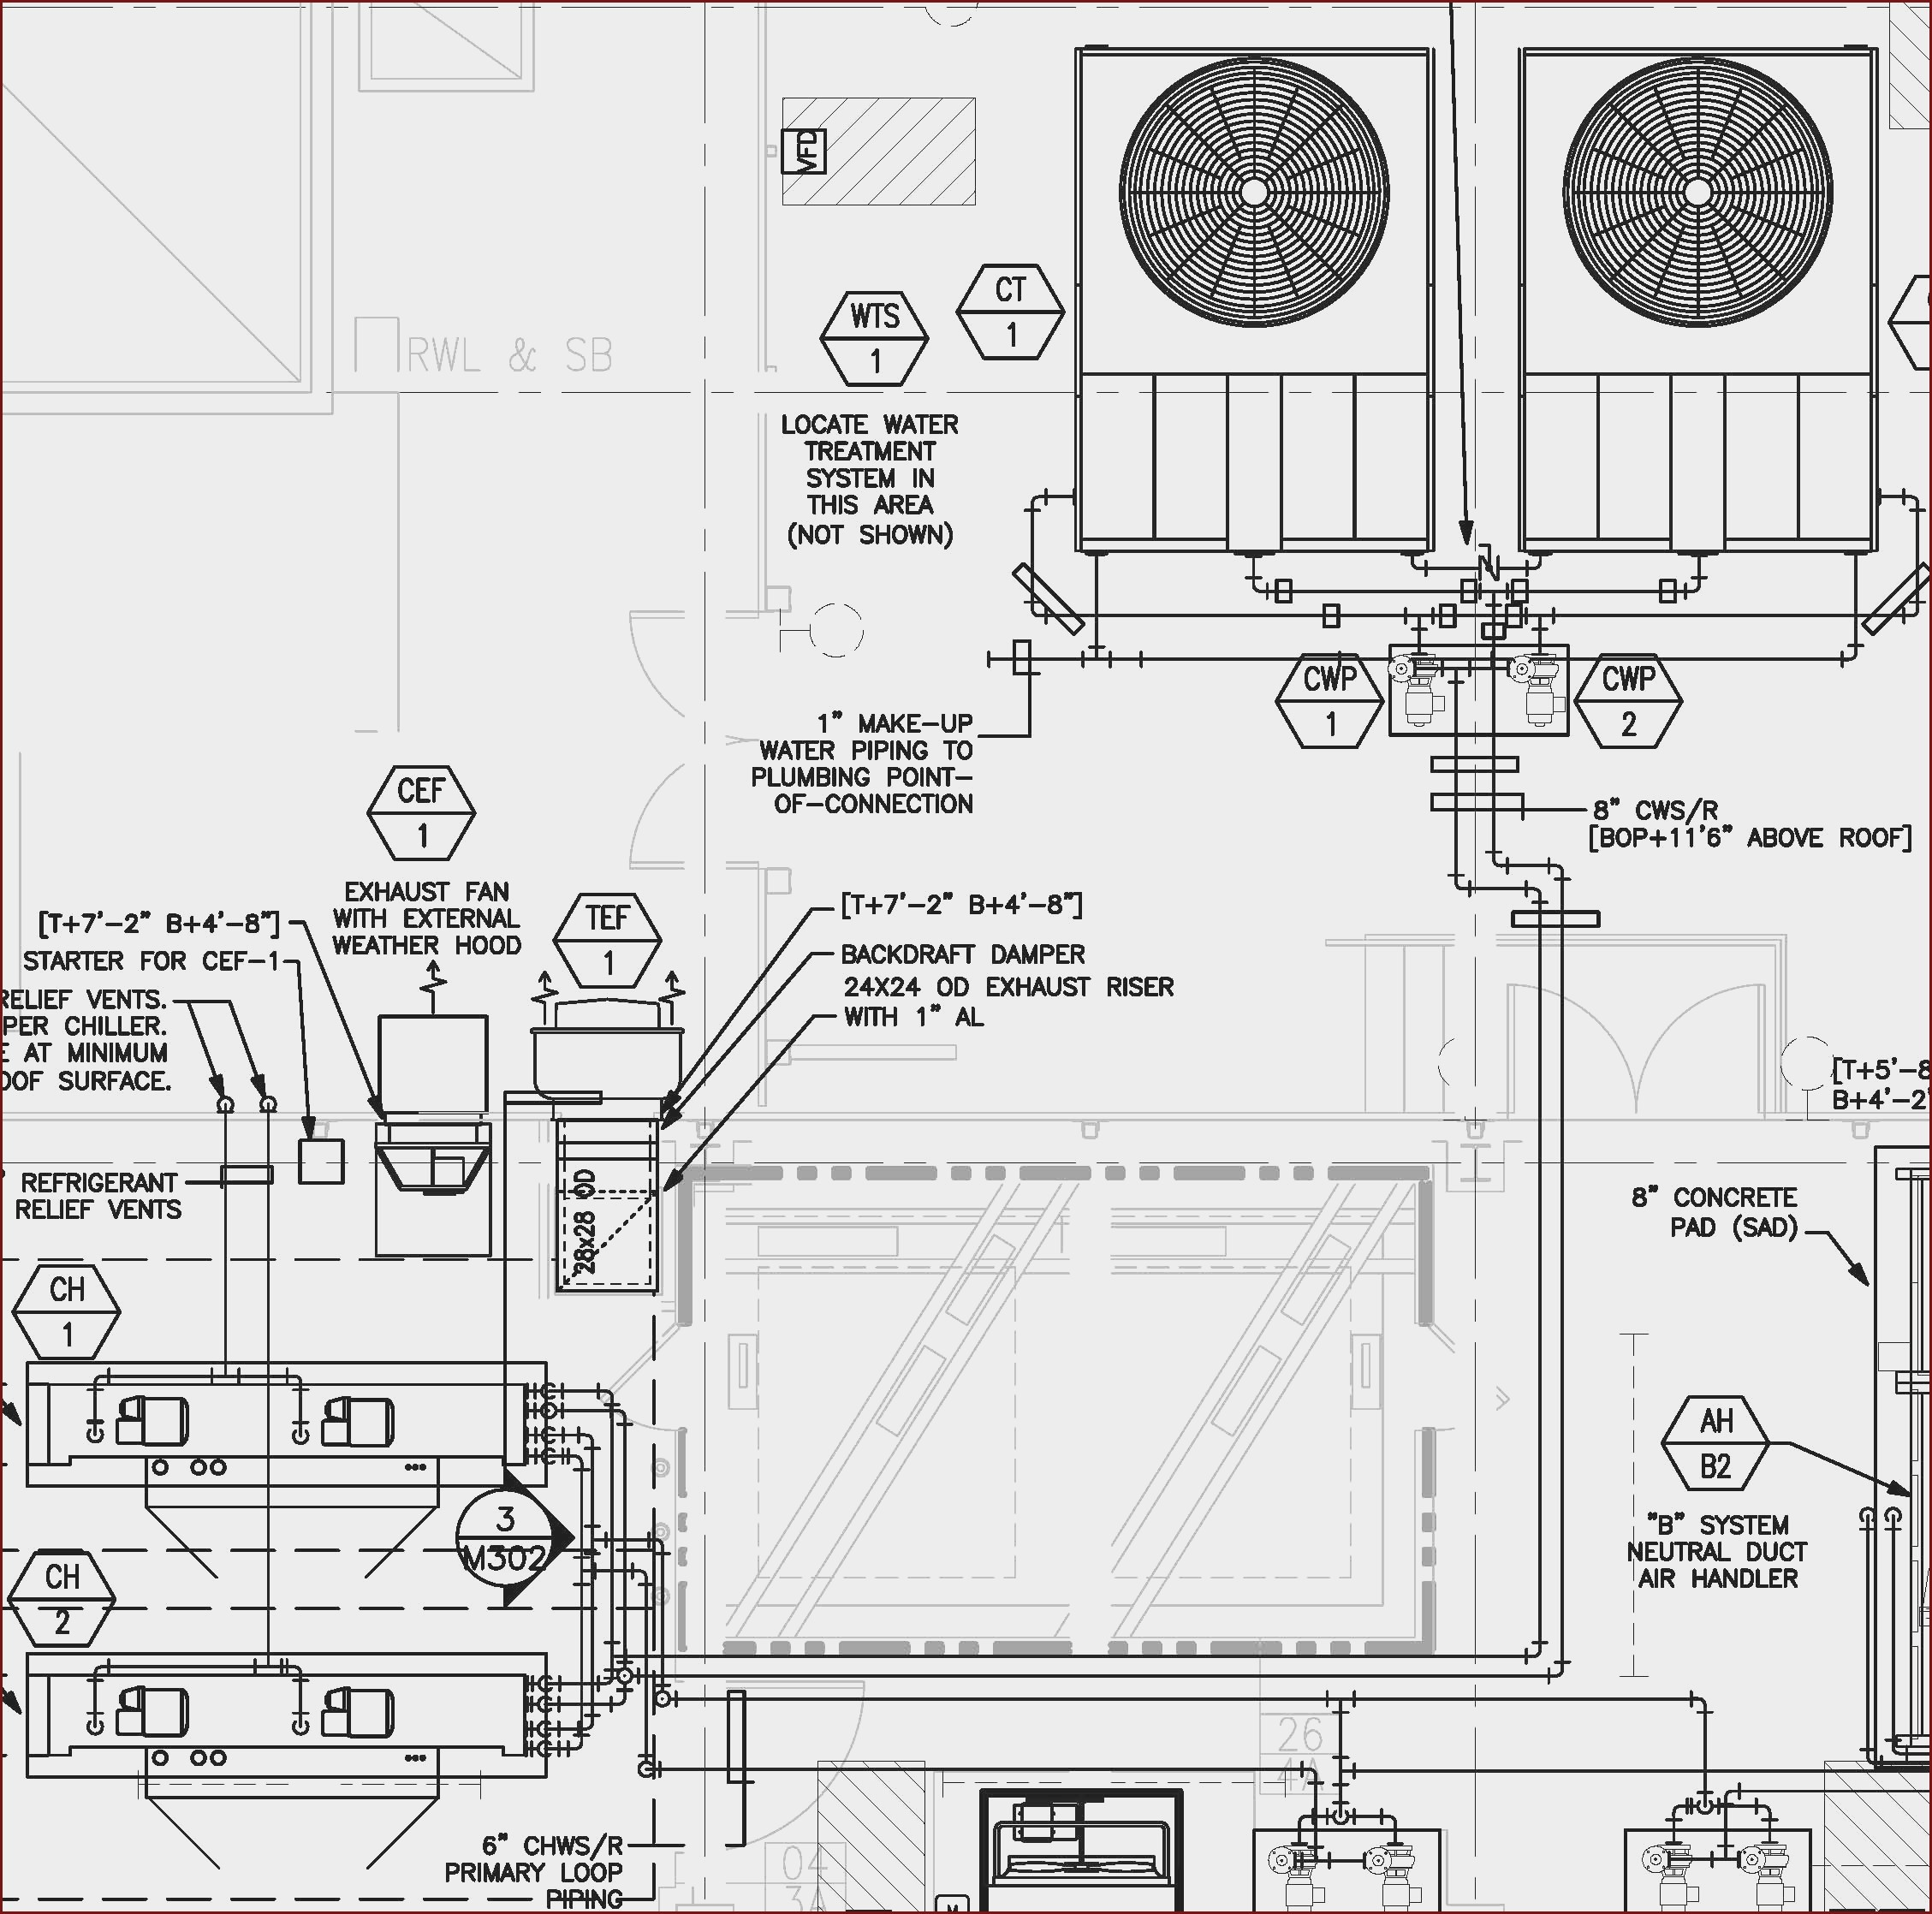 Car Engine Cooling System Diagram Water Cooled Chiller Piping Diagram at Manuals Library Of Car Engine Cooling System Diagram